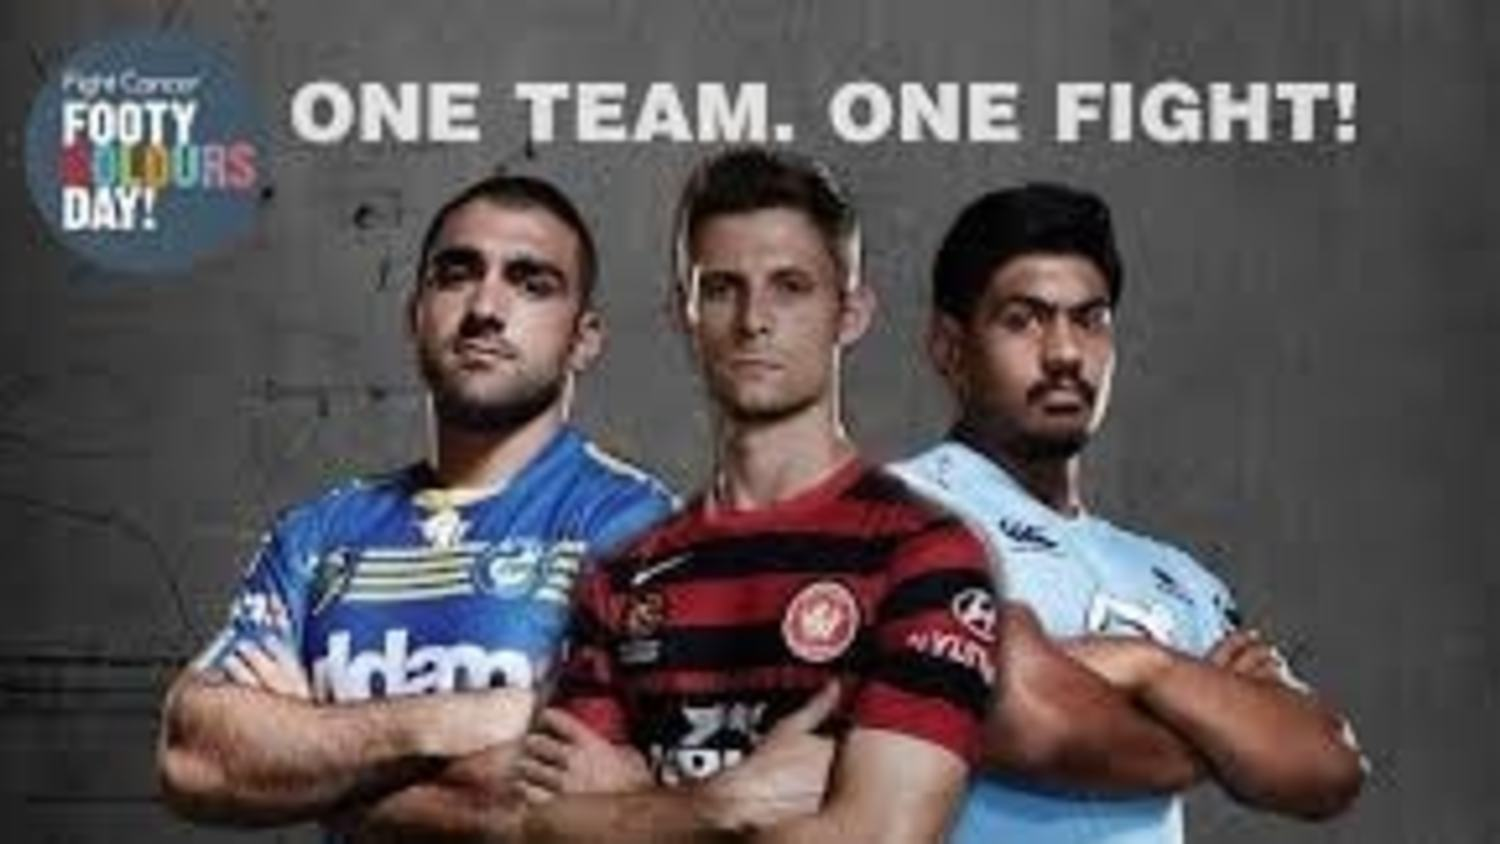 Australia: Football Community Unites to Fight Cancer